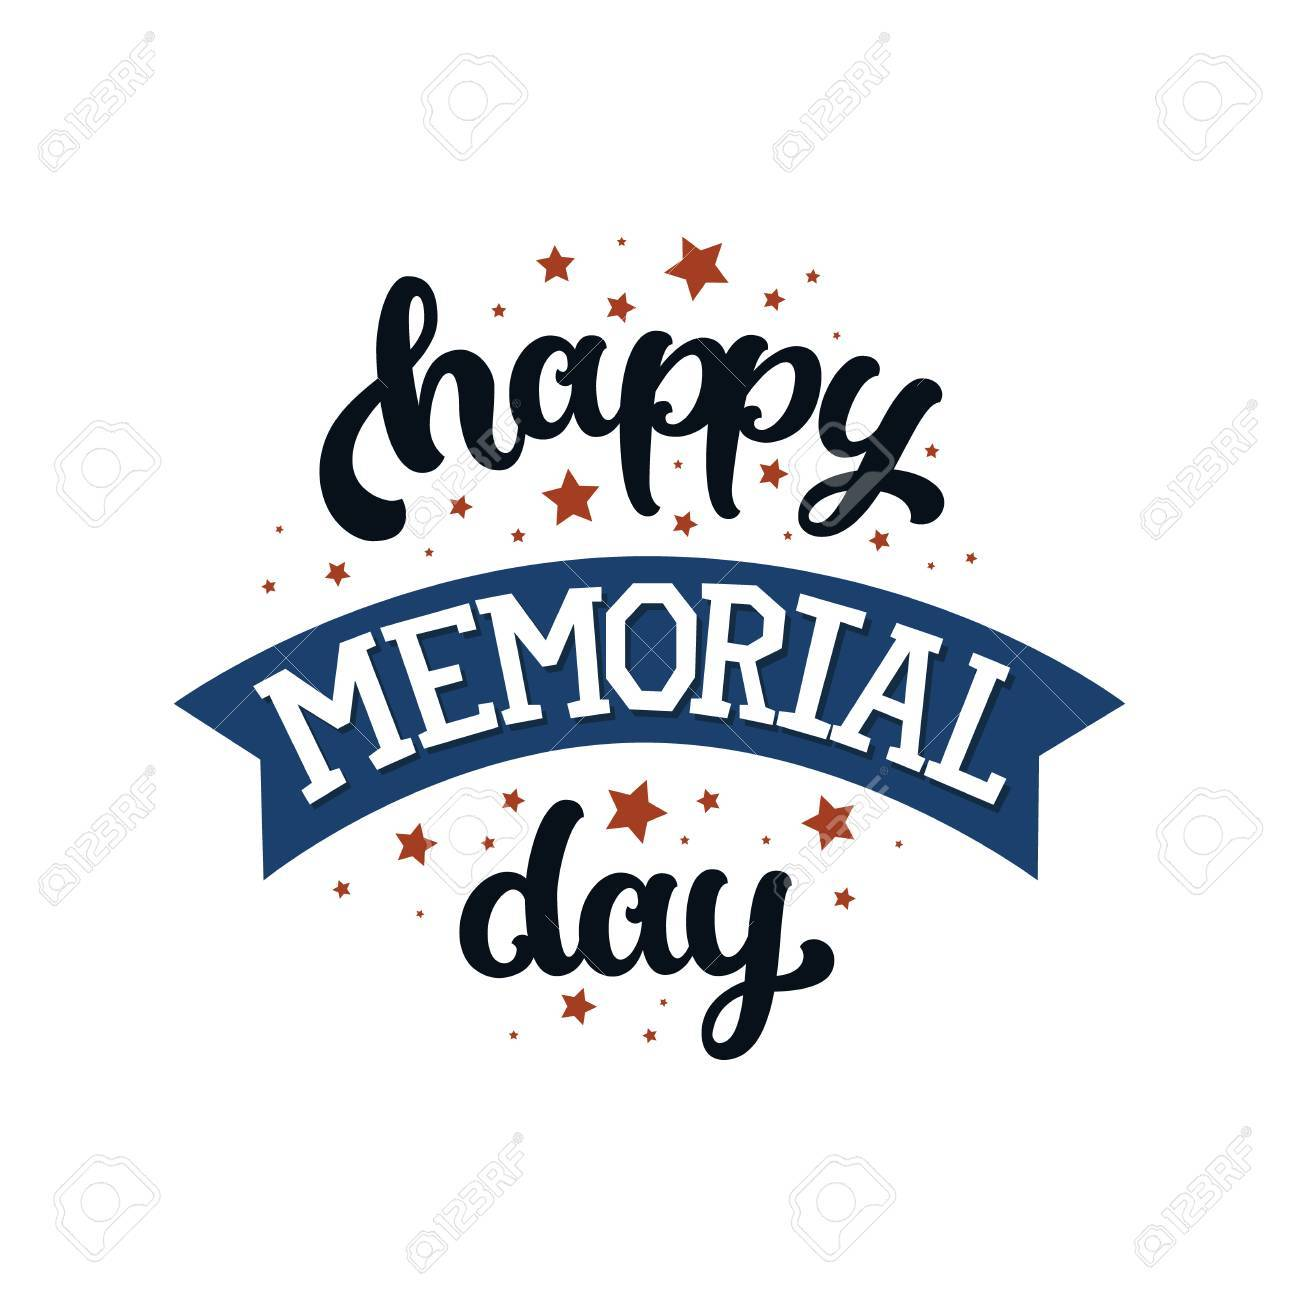 Happy memorial day, text with stars and ribbon on white background.